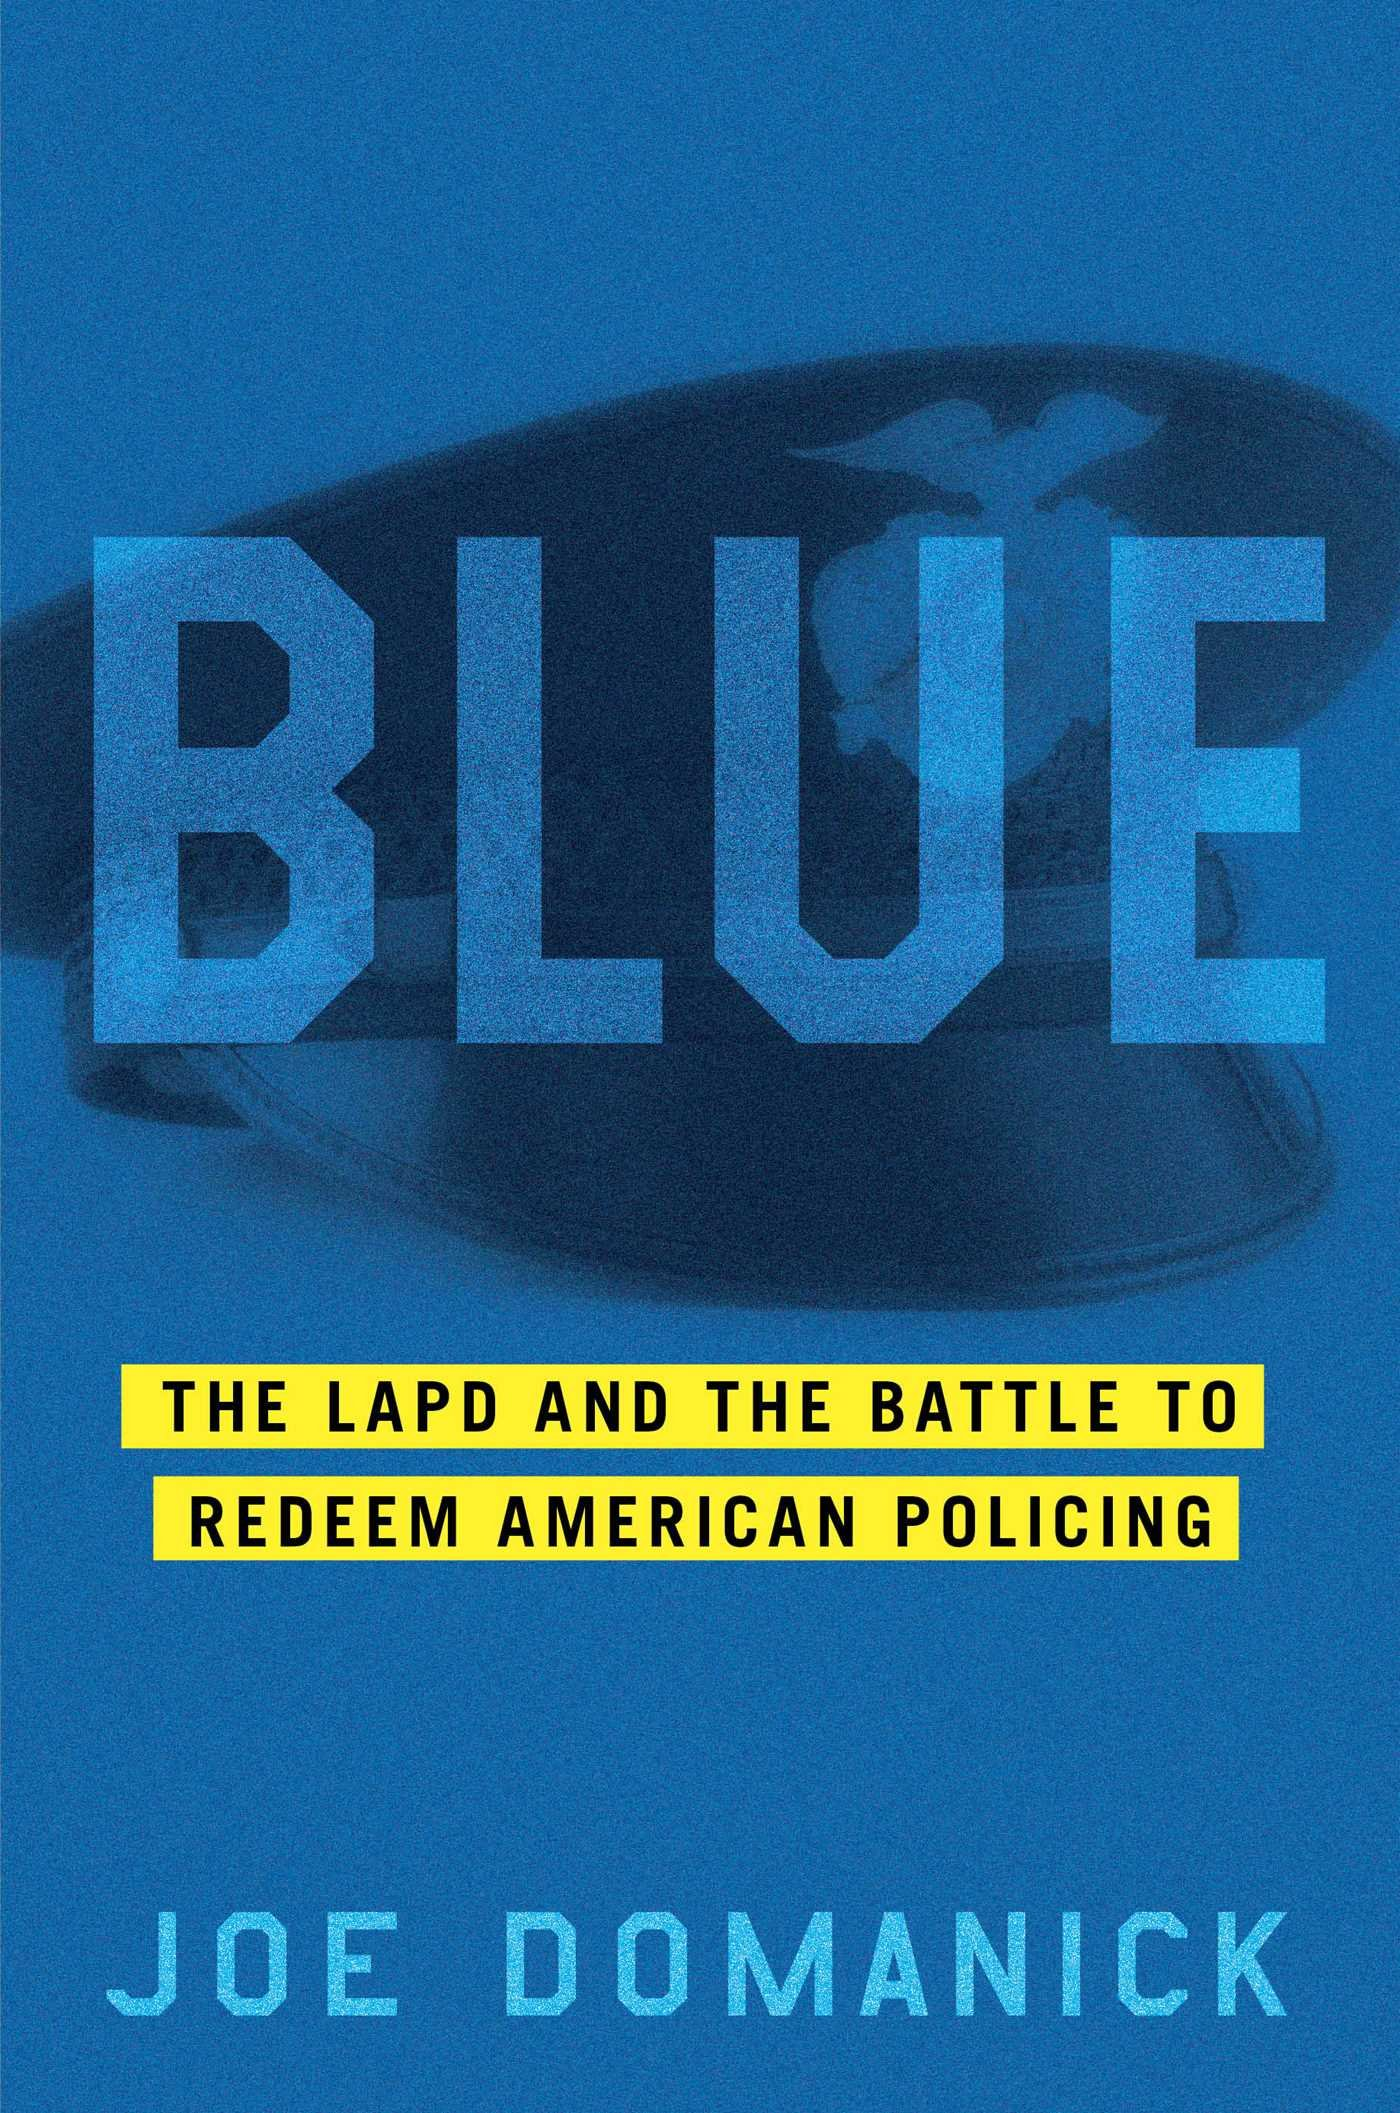 Blue: The LAPD and the Battle to Redeem American Policing by Joe Domanick